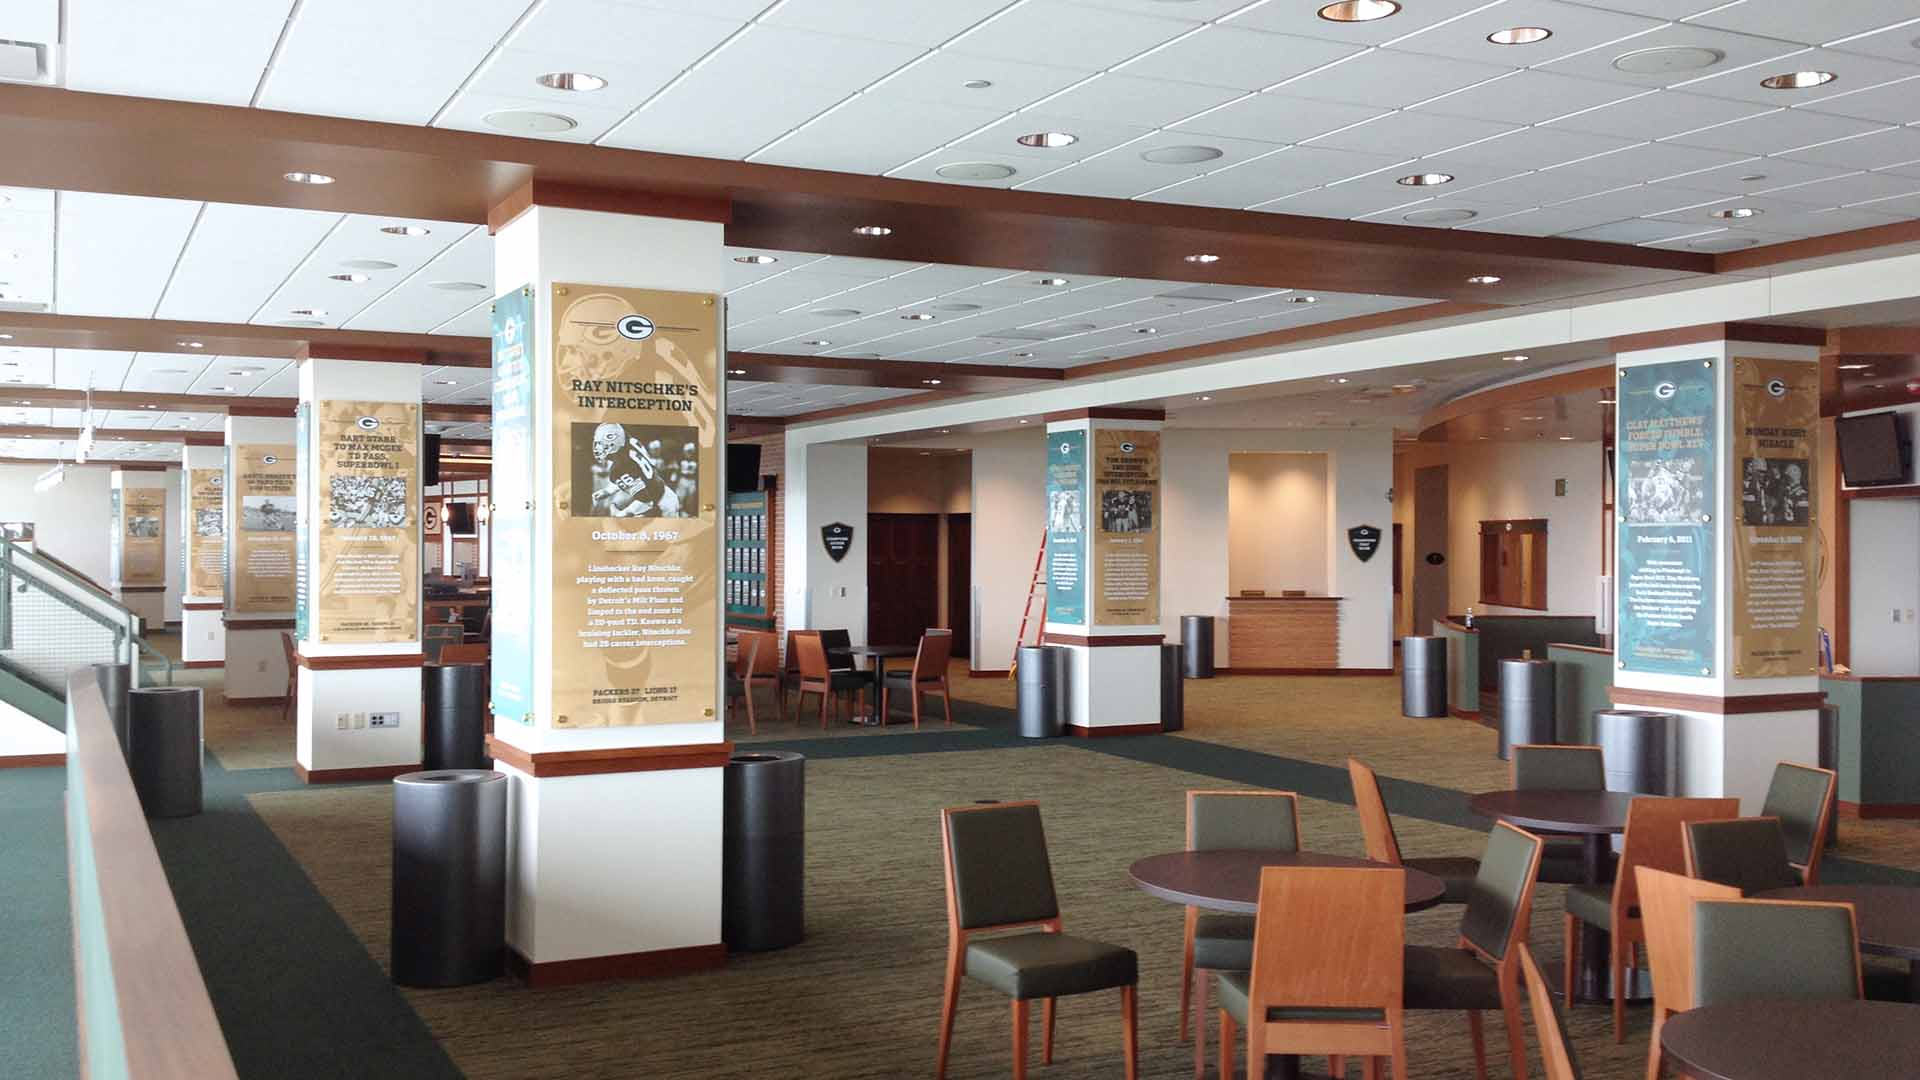 Club house area with graphic panels on columns